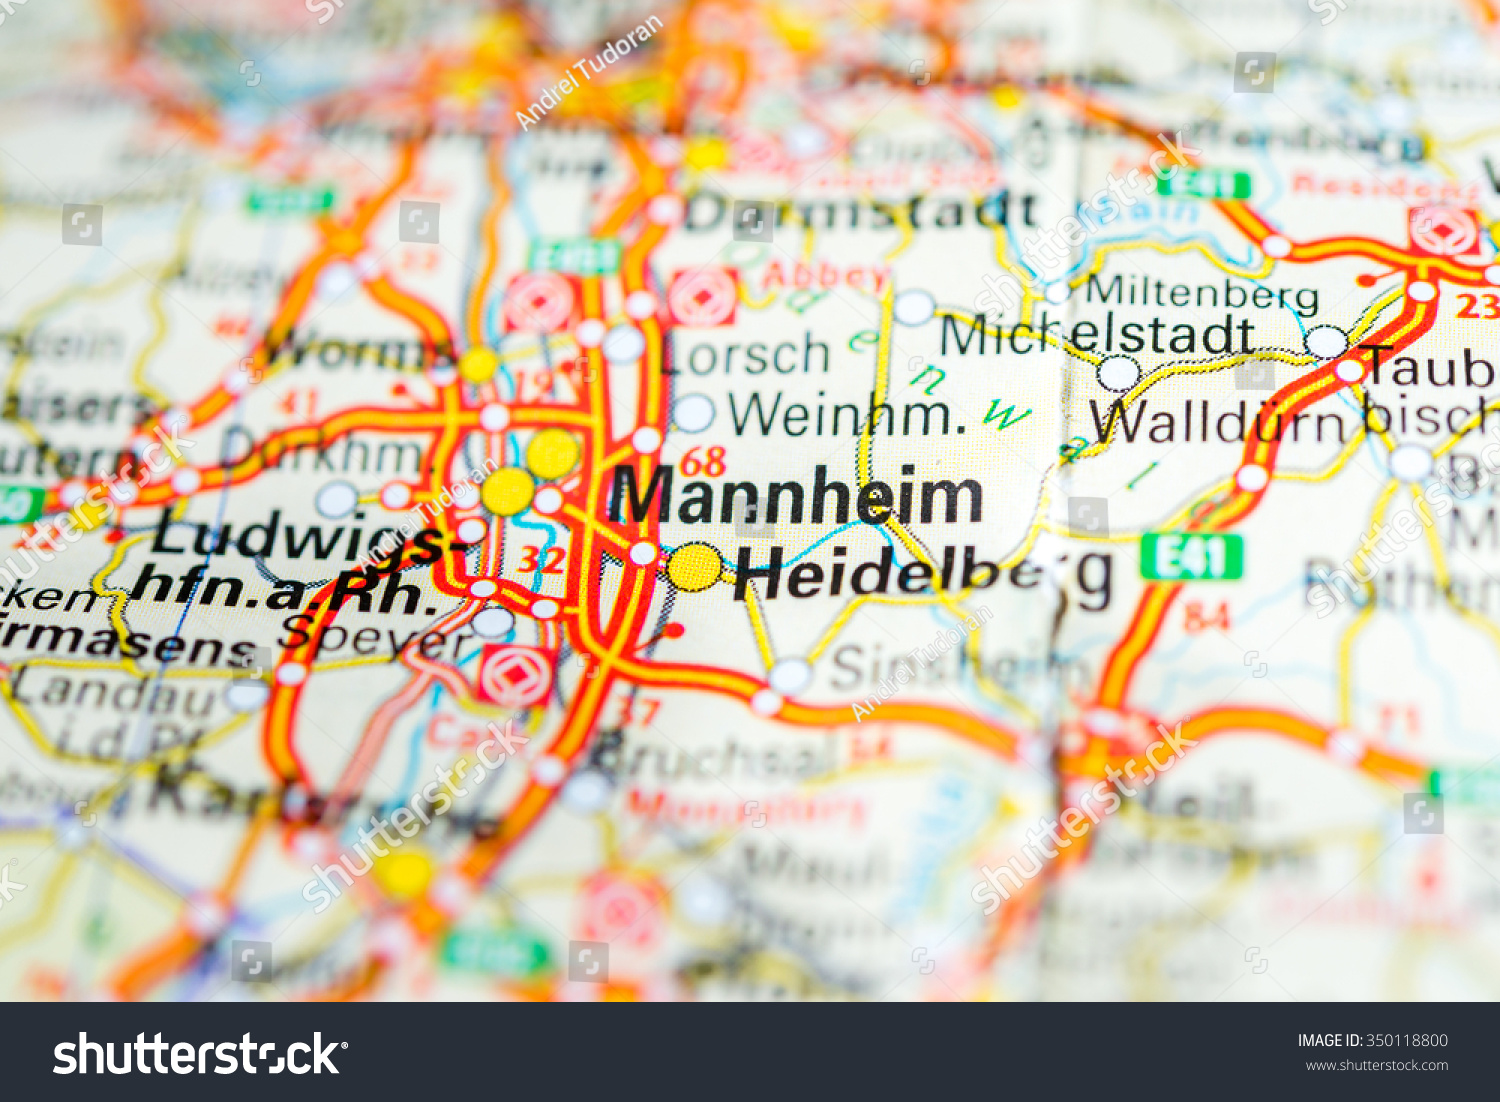 Macro View Mannheim Germany On Map Stock Photo 350118800 Shutterstock